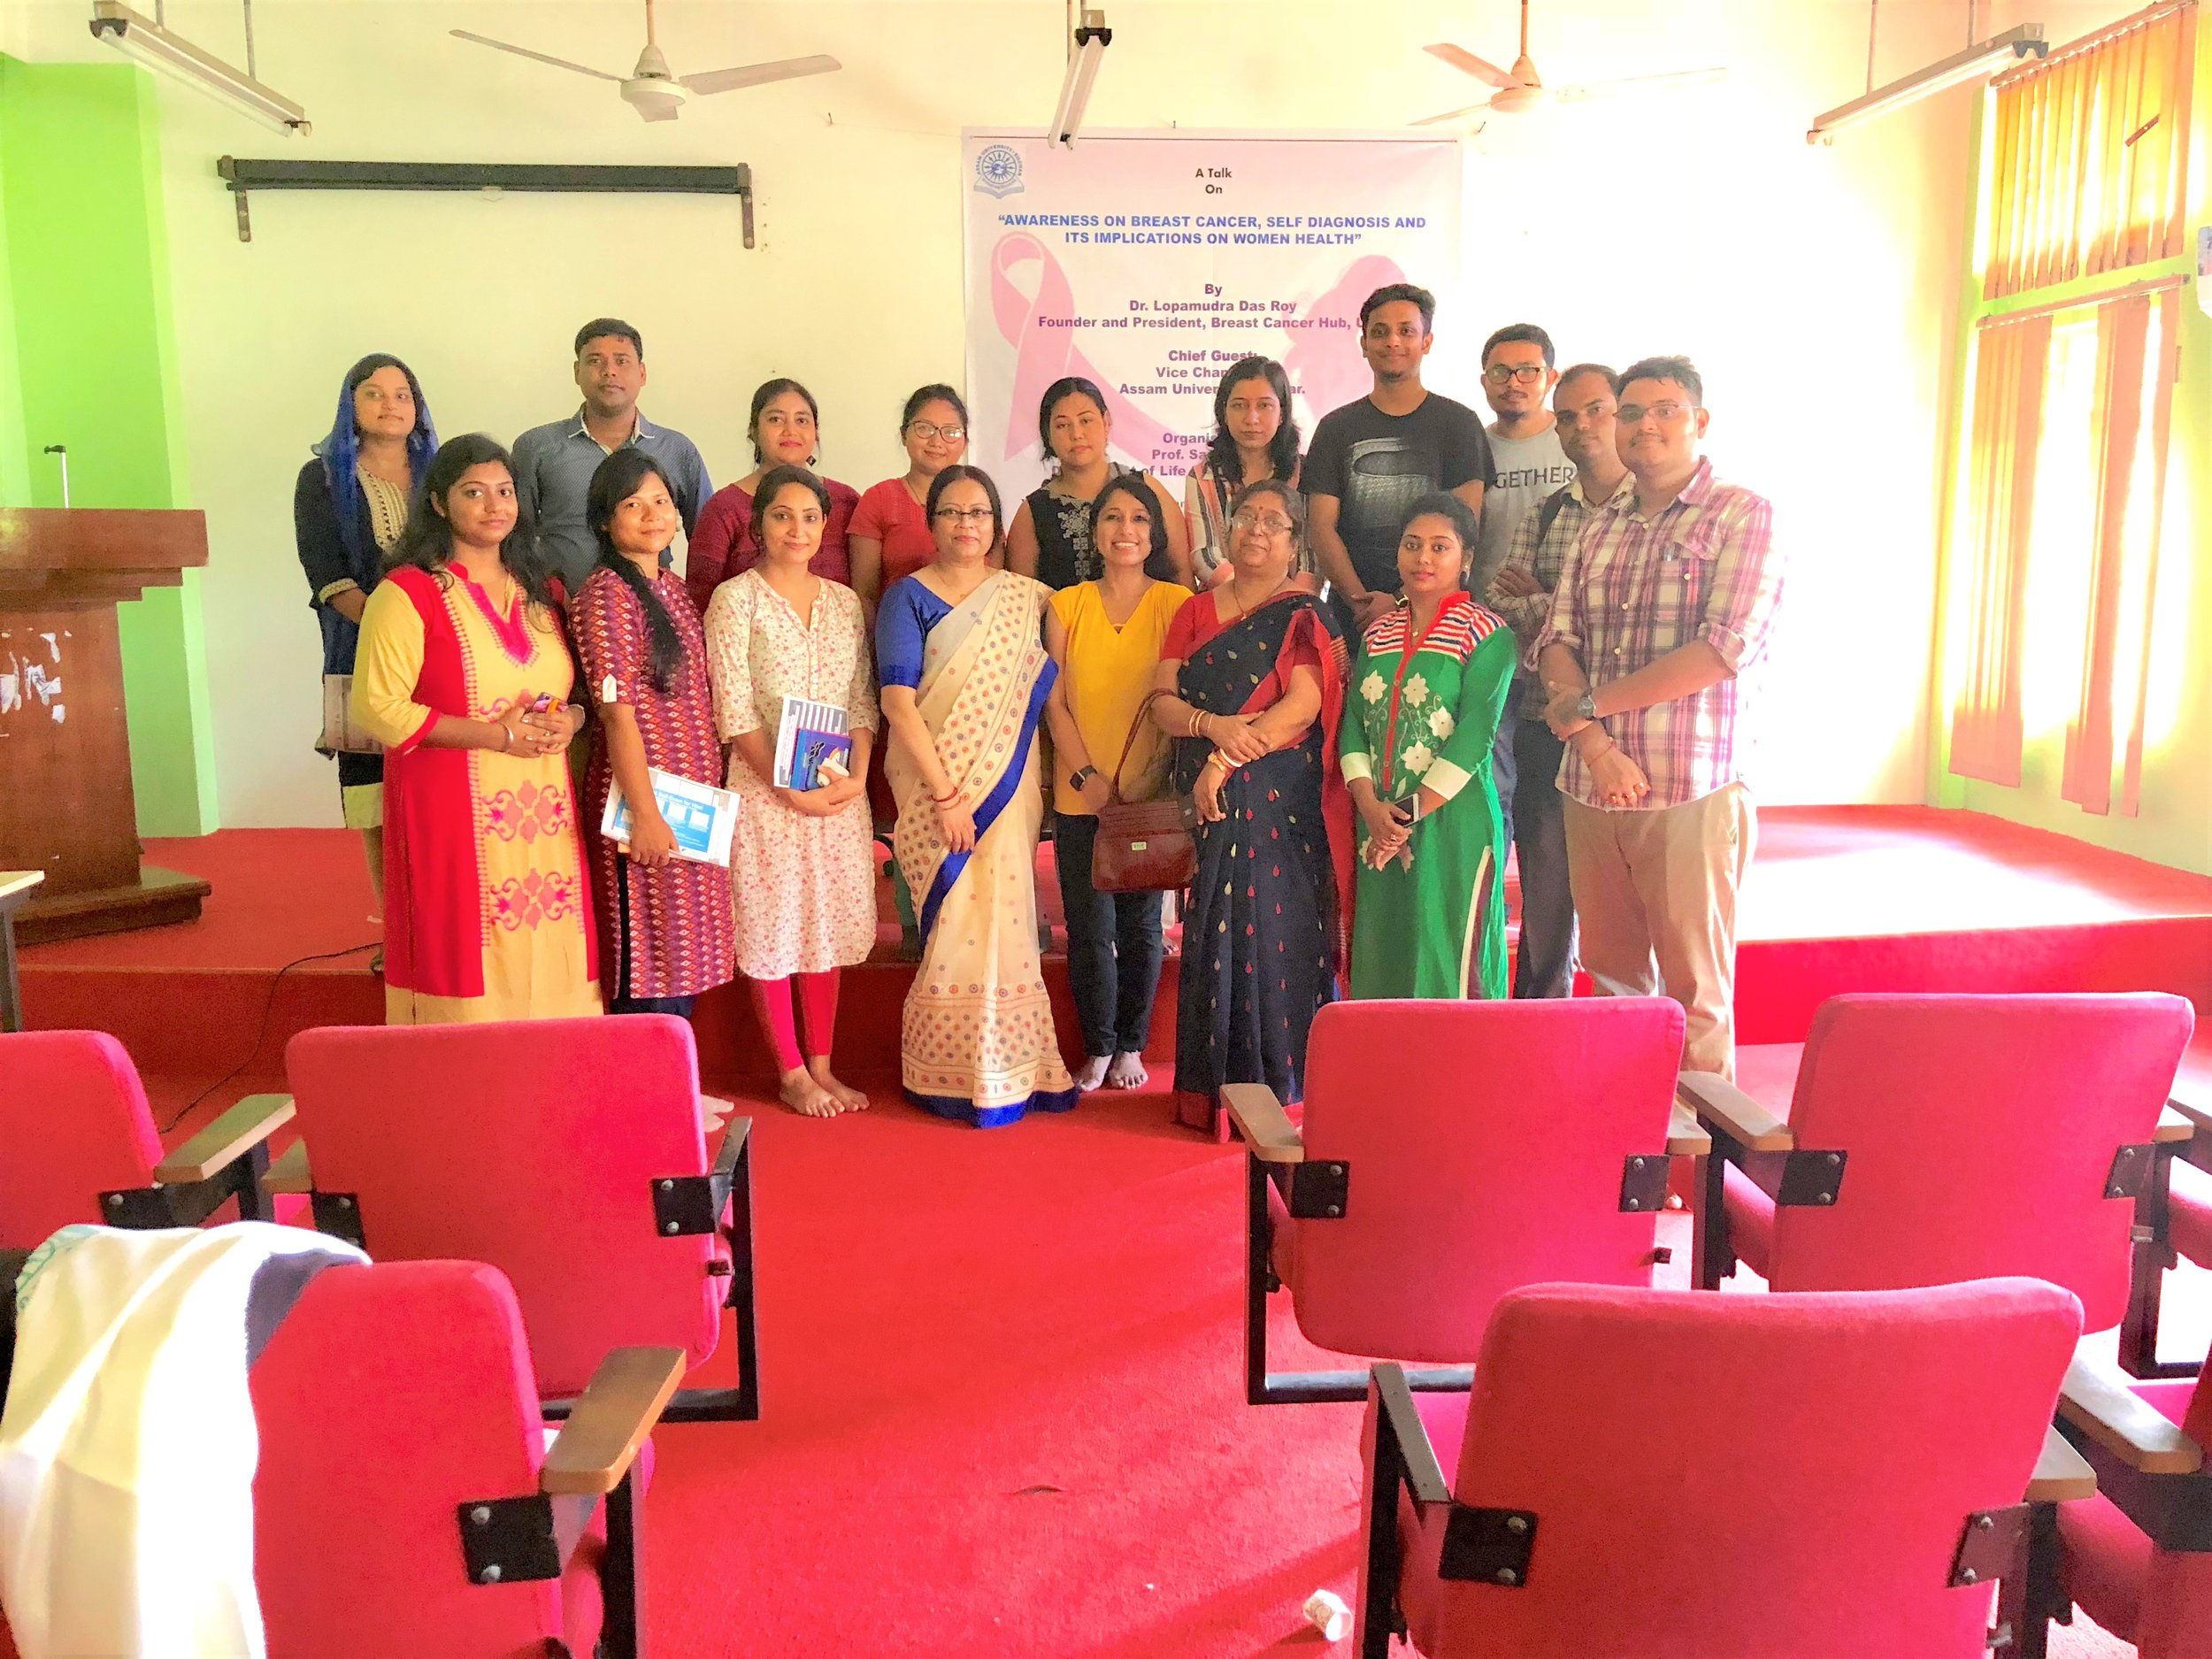 "I was so honored to be invited by my Ph.D mentor, Professor. Sarbani Giri, Department of Life Science & Bioinformatics to give a talk on "" Awareness on Breast Cancer, Self Diagnosis, and its implications on Women Health"". My heartfelt thanks to Dr. Giri for supporting me and the cause and organizing the event.  I was speechless by the Research Scholars of the Department of Life Sciences, who have come forward to collaborate and take the message forward in their own provinces they come from. I am so proud of the young generation and their selfless gesture supporting the cause and coming together….My heartflet thanks to Ms. Malaya Ghosh, Ms. Pimily Langthasa, Ms. Puja Upadhaya, Ms. Sweety Nath Barbhuiya, Mr. Dharmesh Barhoi, Ms. Aparajita Das, Ms. Krishna Bhuiya, Ms. Mandira Lohar, Dr. Supriya Singh, Mr. Indranil Das, Mr. Arabinda Patar, Ms. Nijira Brahma, to name a few."